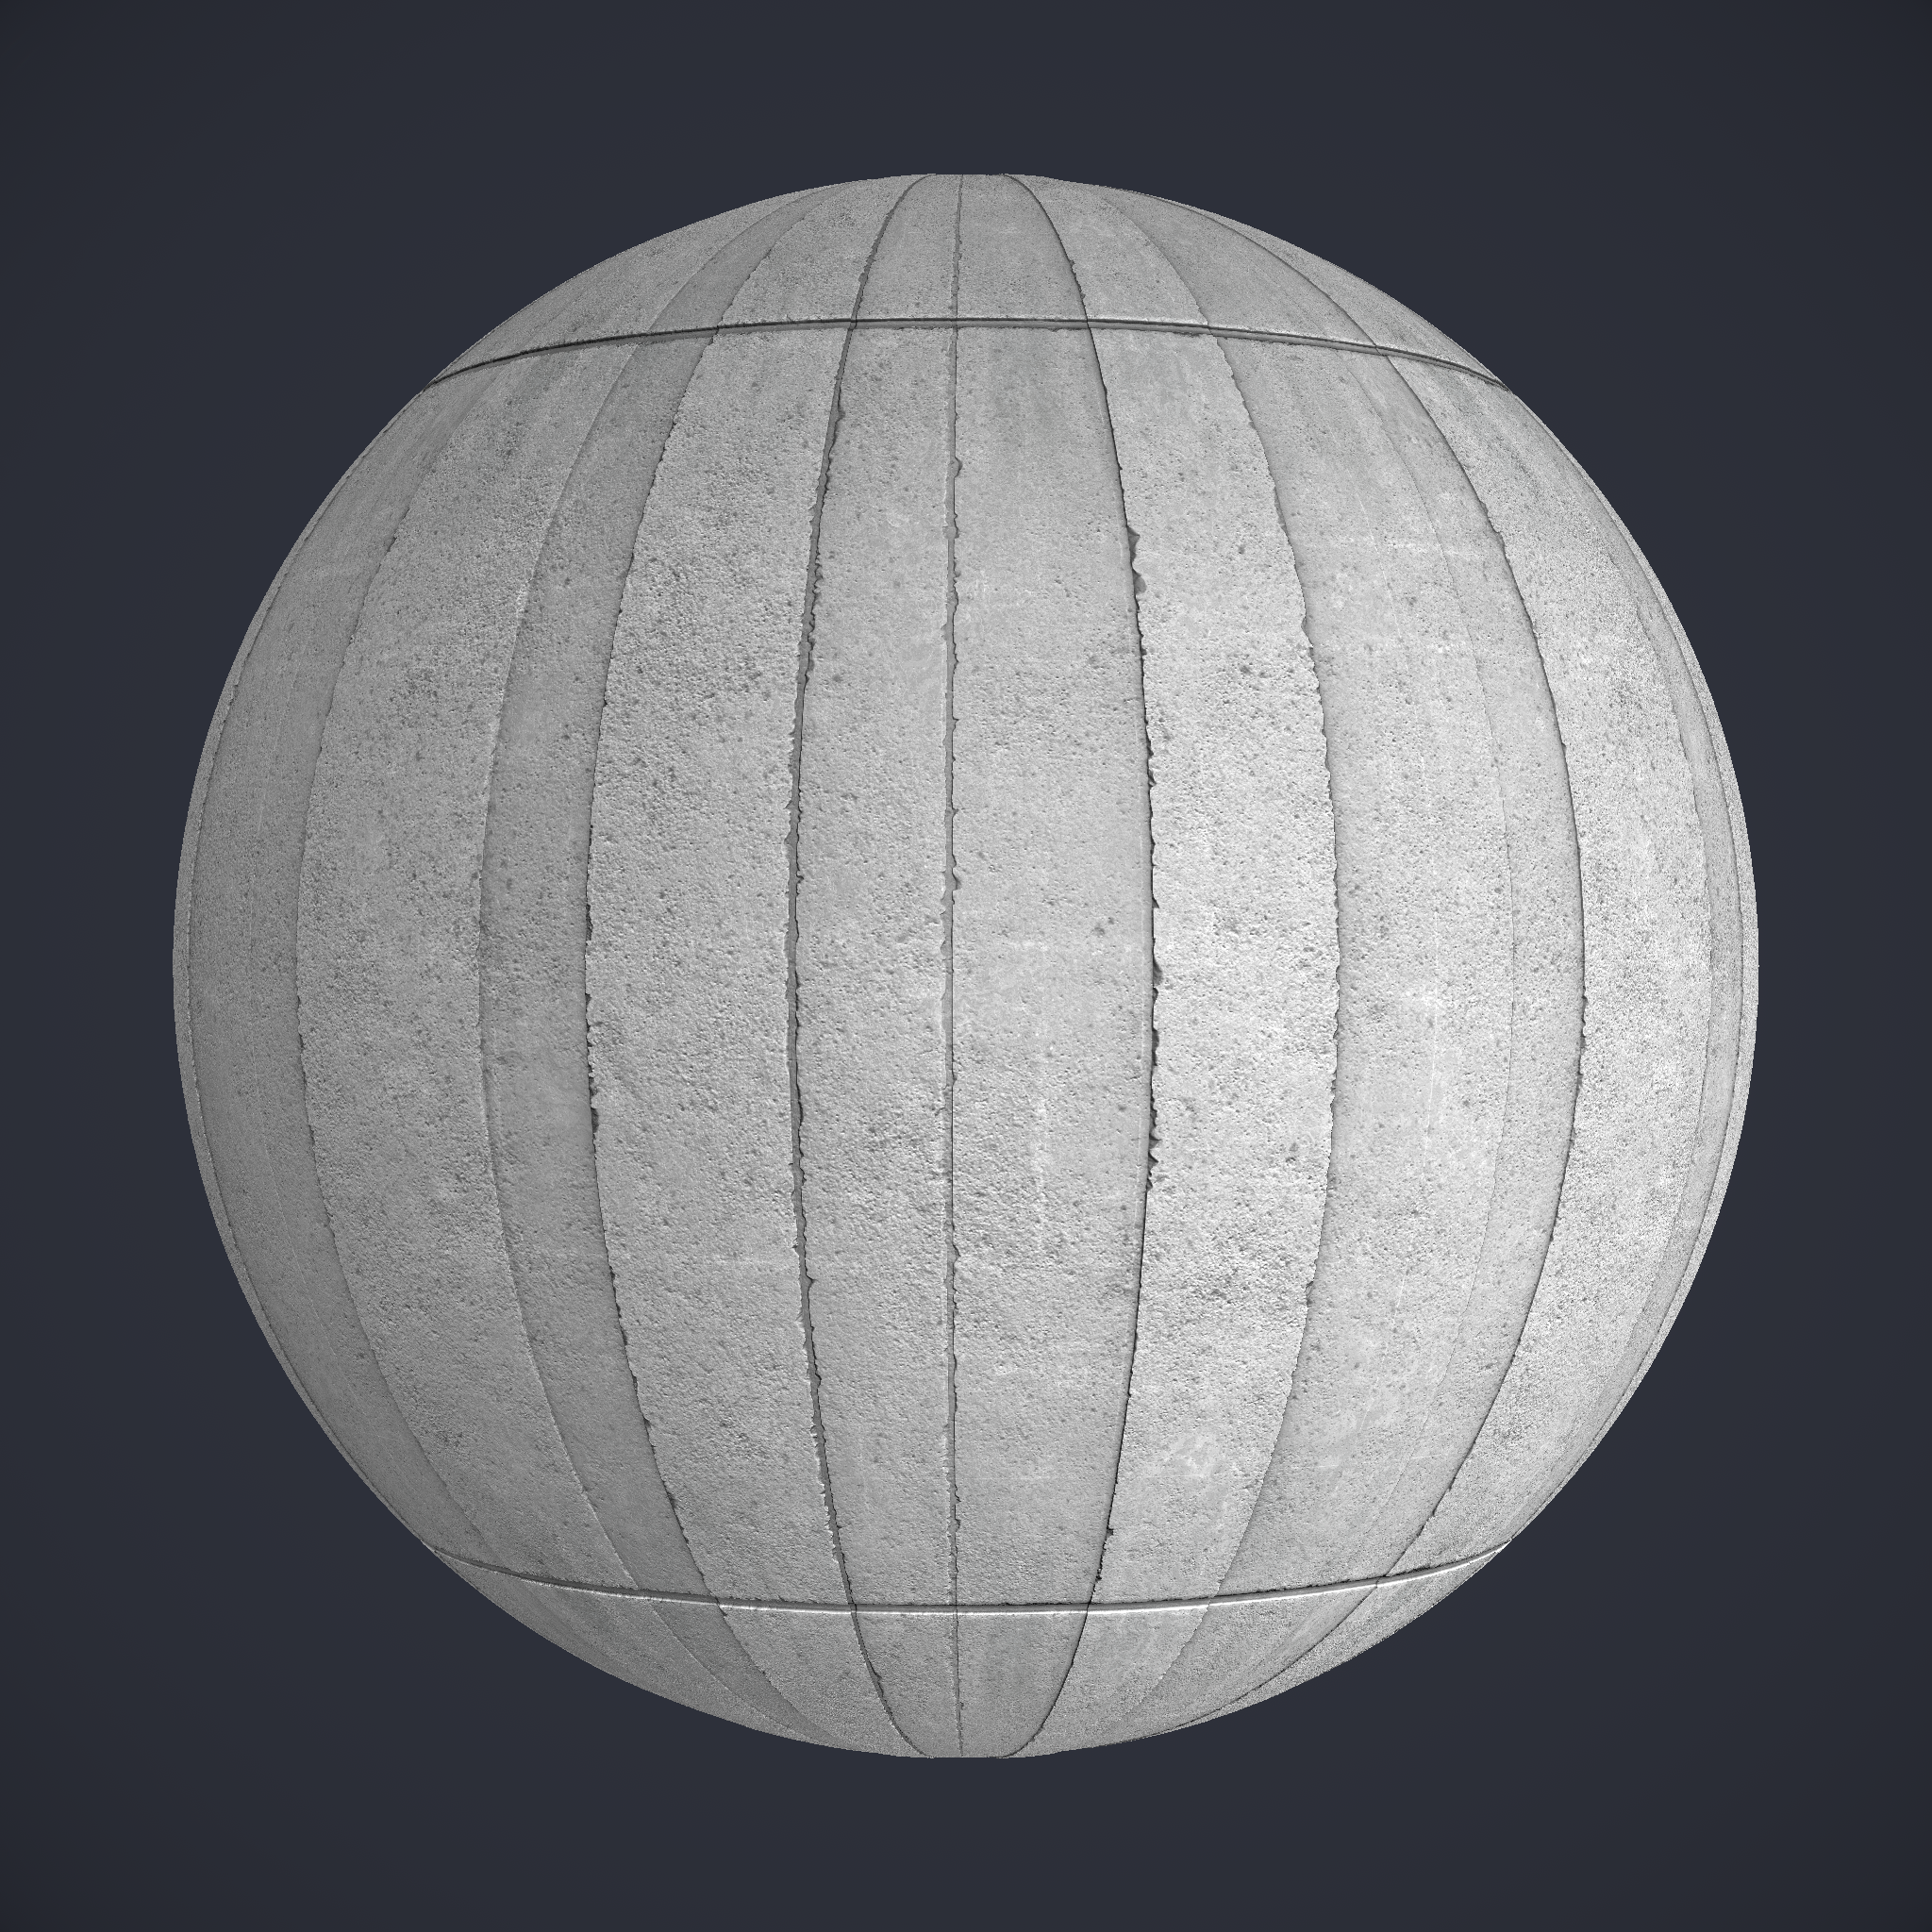 concrete_wall_13_render.png